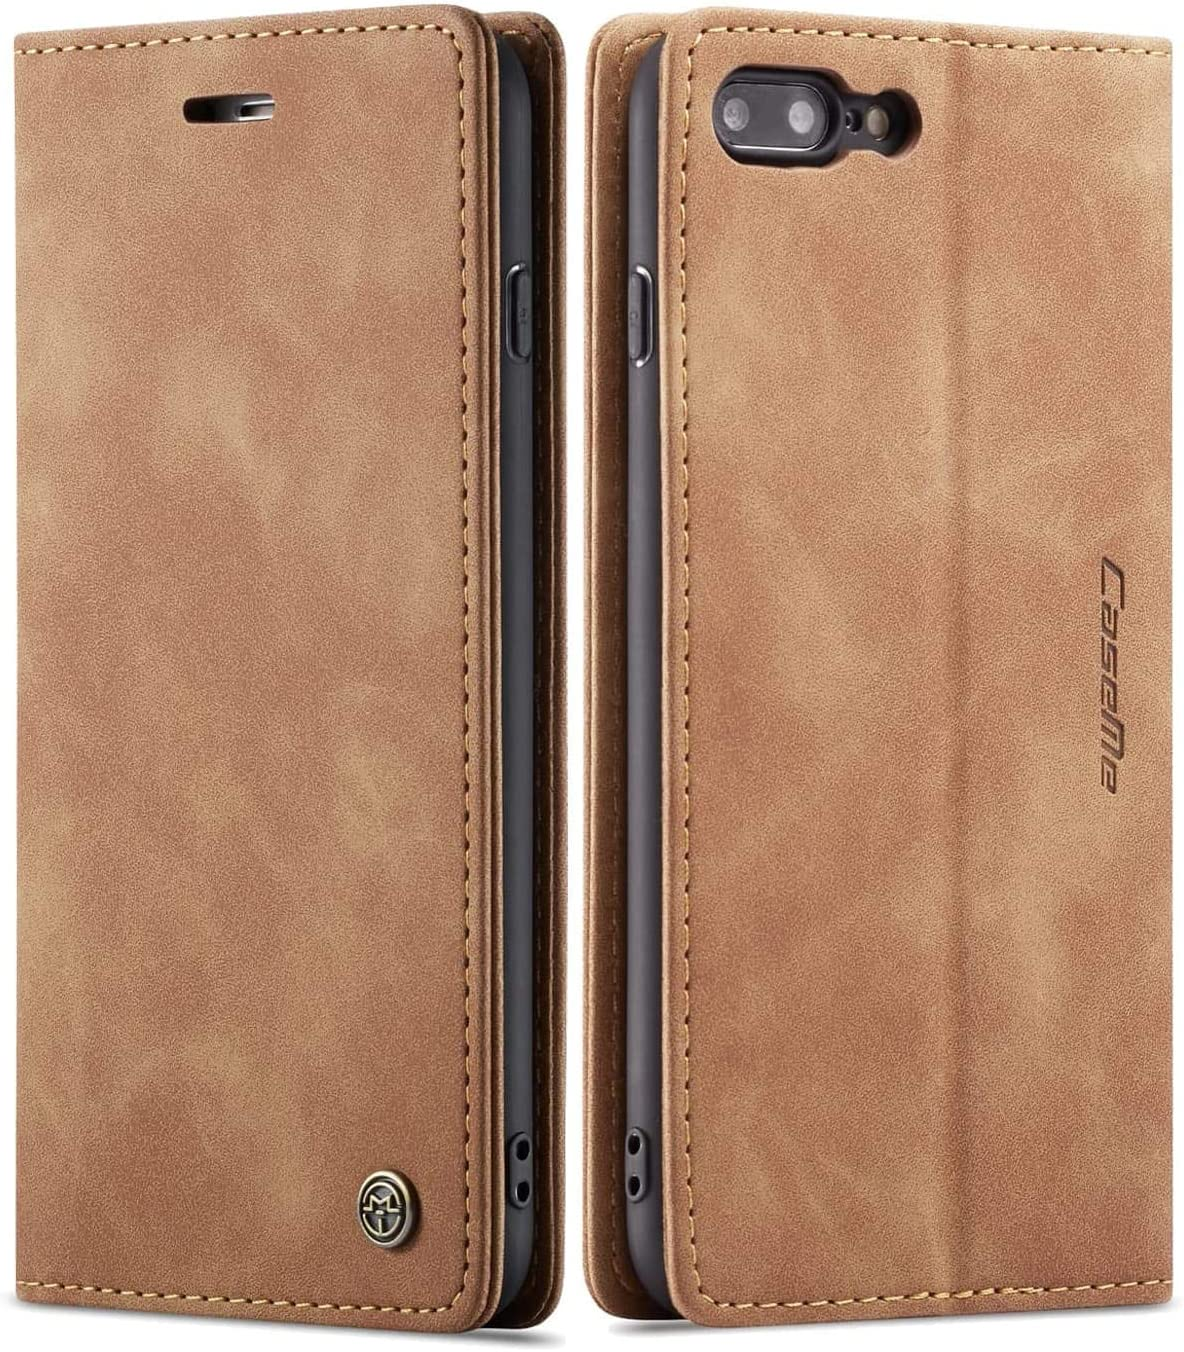 iPhone 8 Plus Wallet Case iPhone 7 Plus Leather Case, SINIANL Folio Case with Kickstand Credit Card Holder Magnetic Closure Folding Flip Book Cover Case for iPhone 7 Plus iPhone 8 Plus - Brown